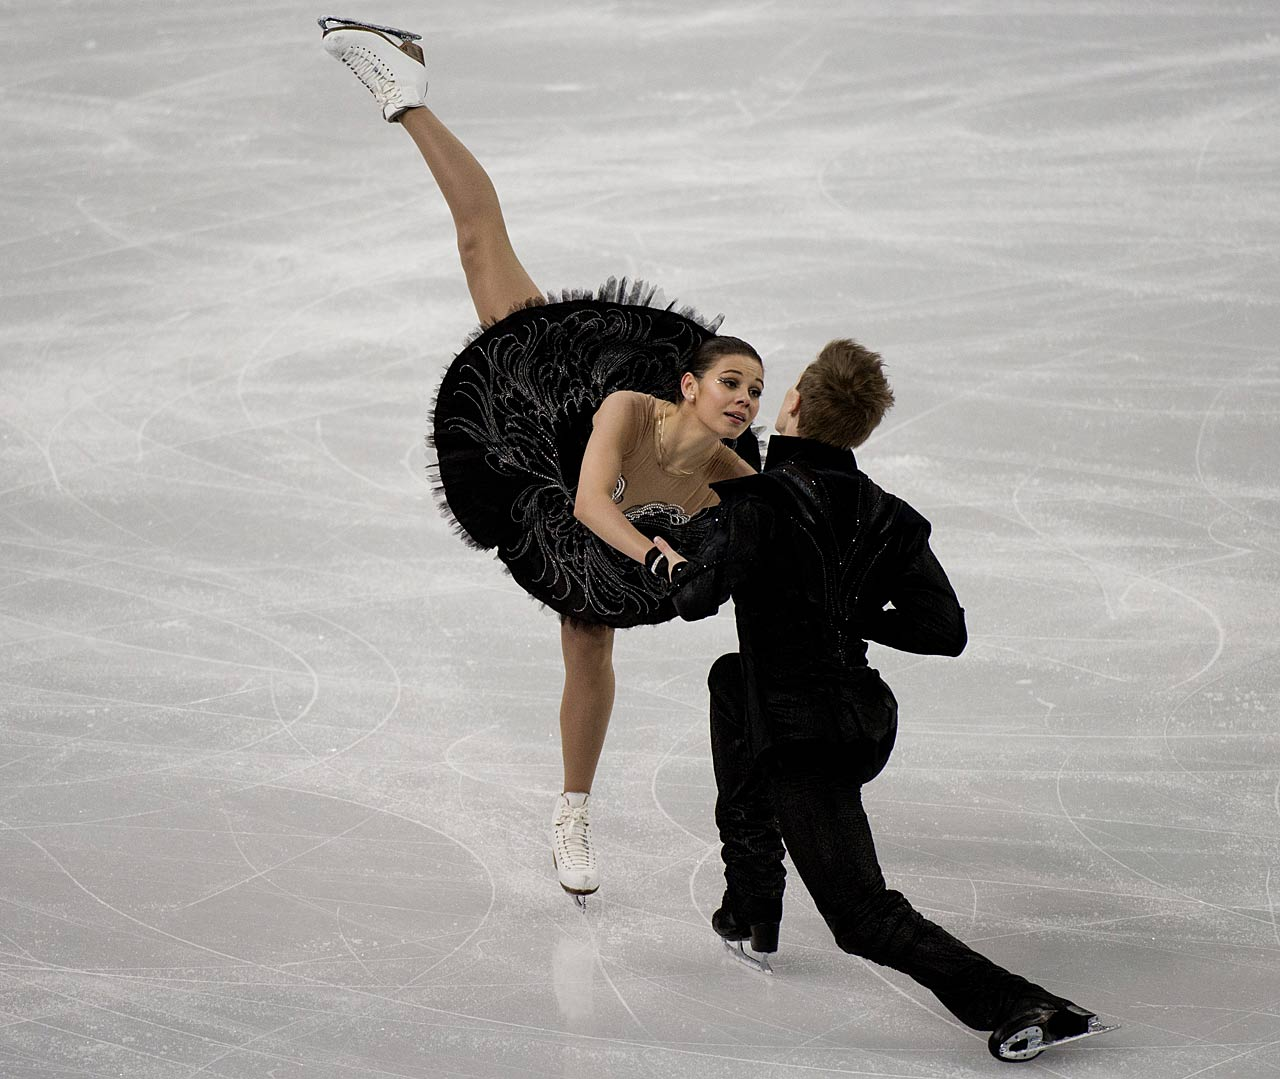 Elena Ilinykh and Nikita Katsalapov of Russia compete in the Team Ice Dance Free Dance.